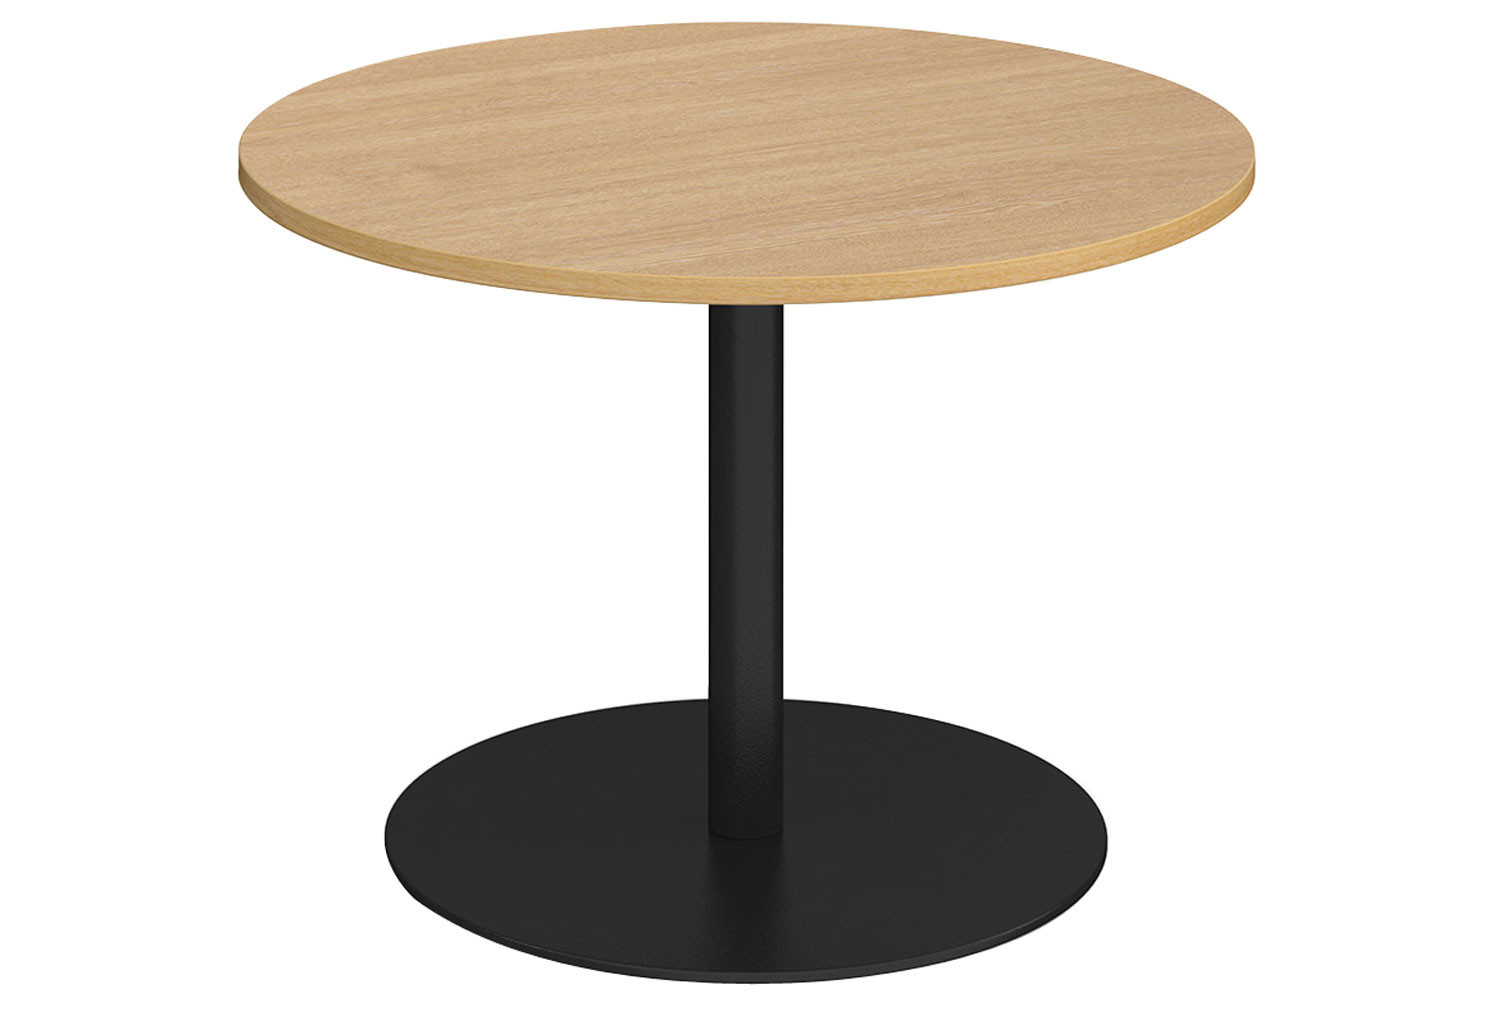 Constant Circular Boardroom Table